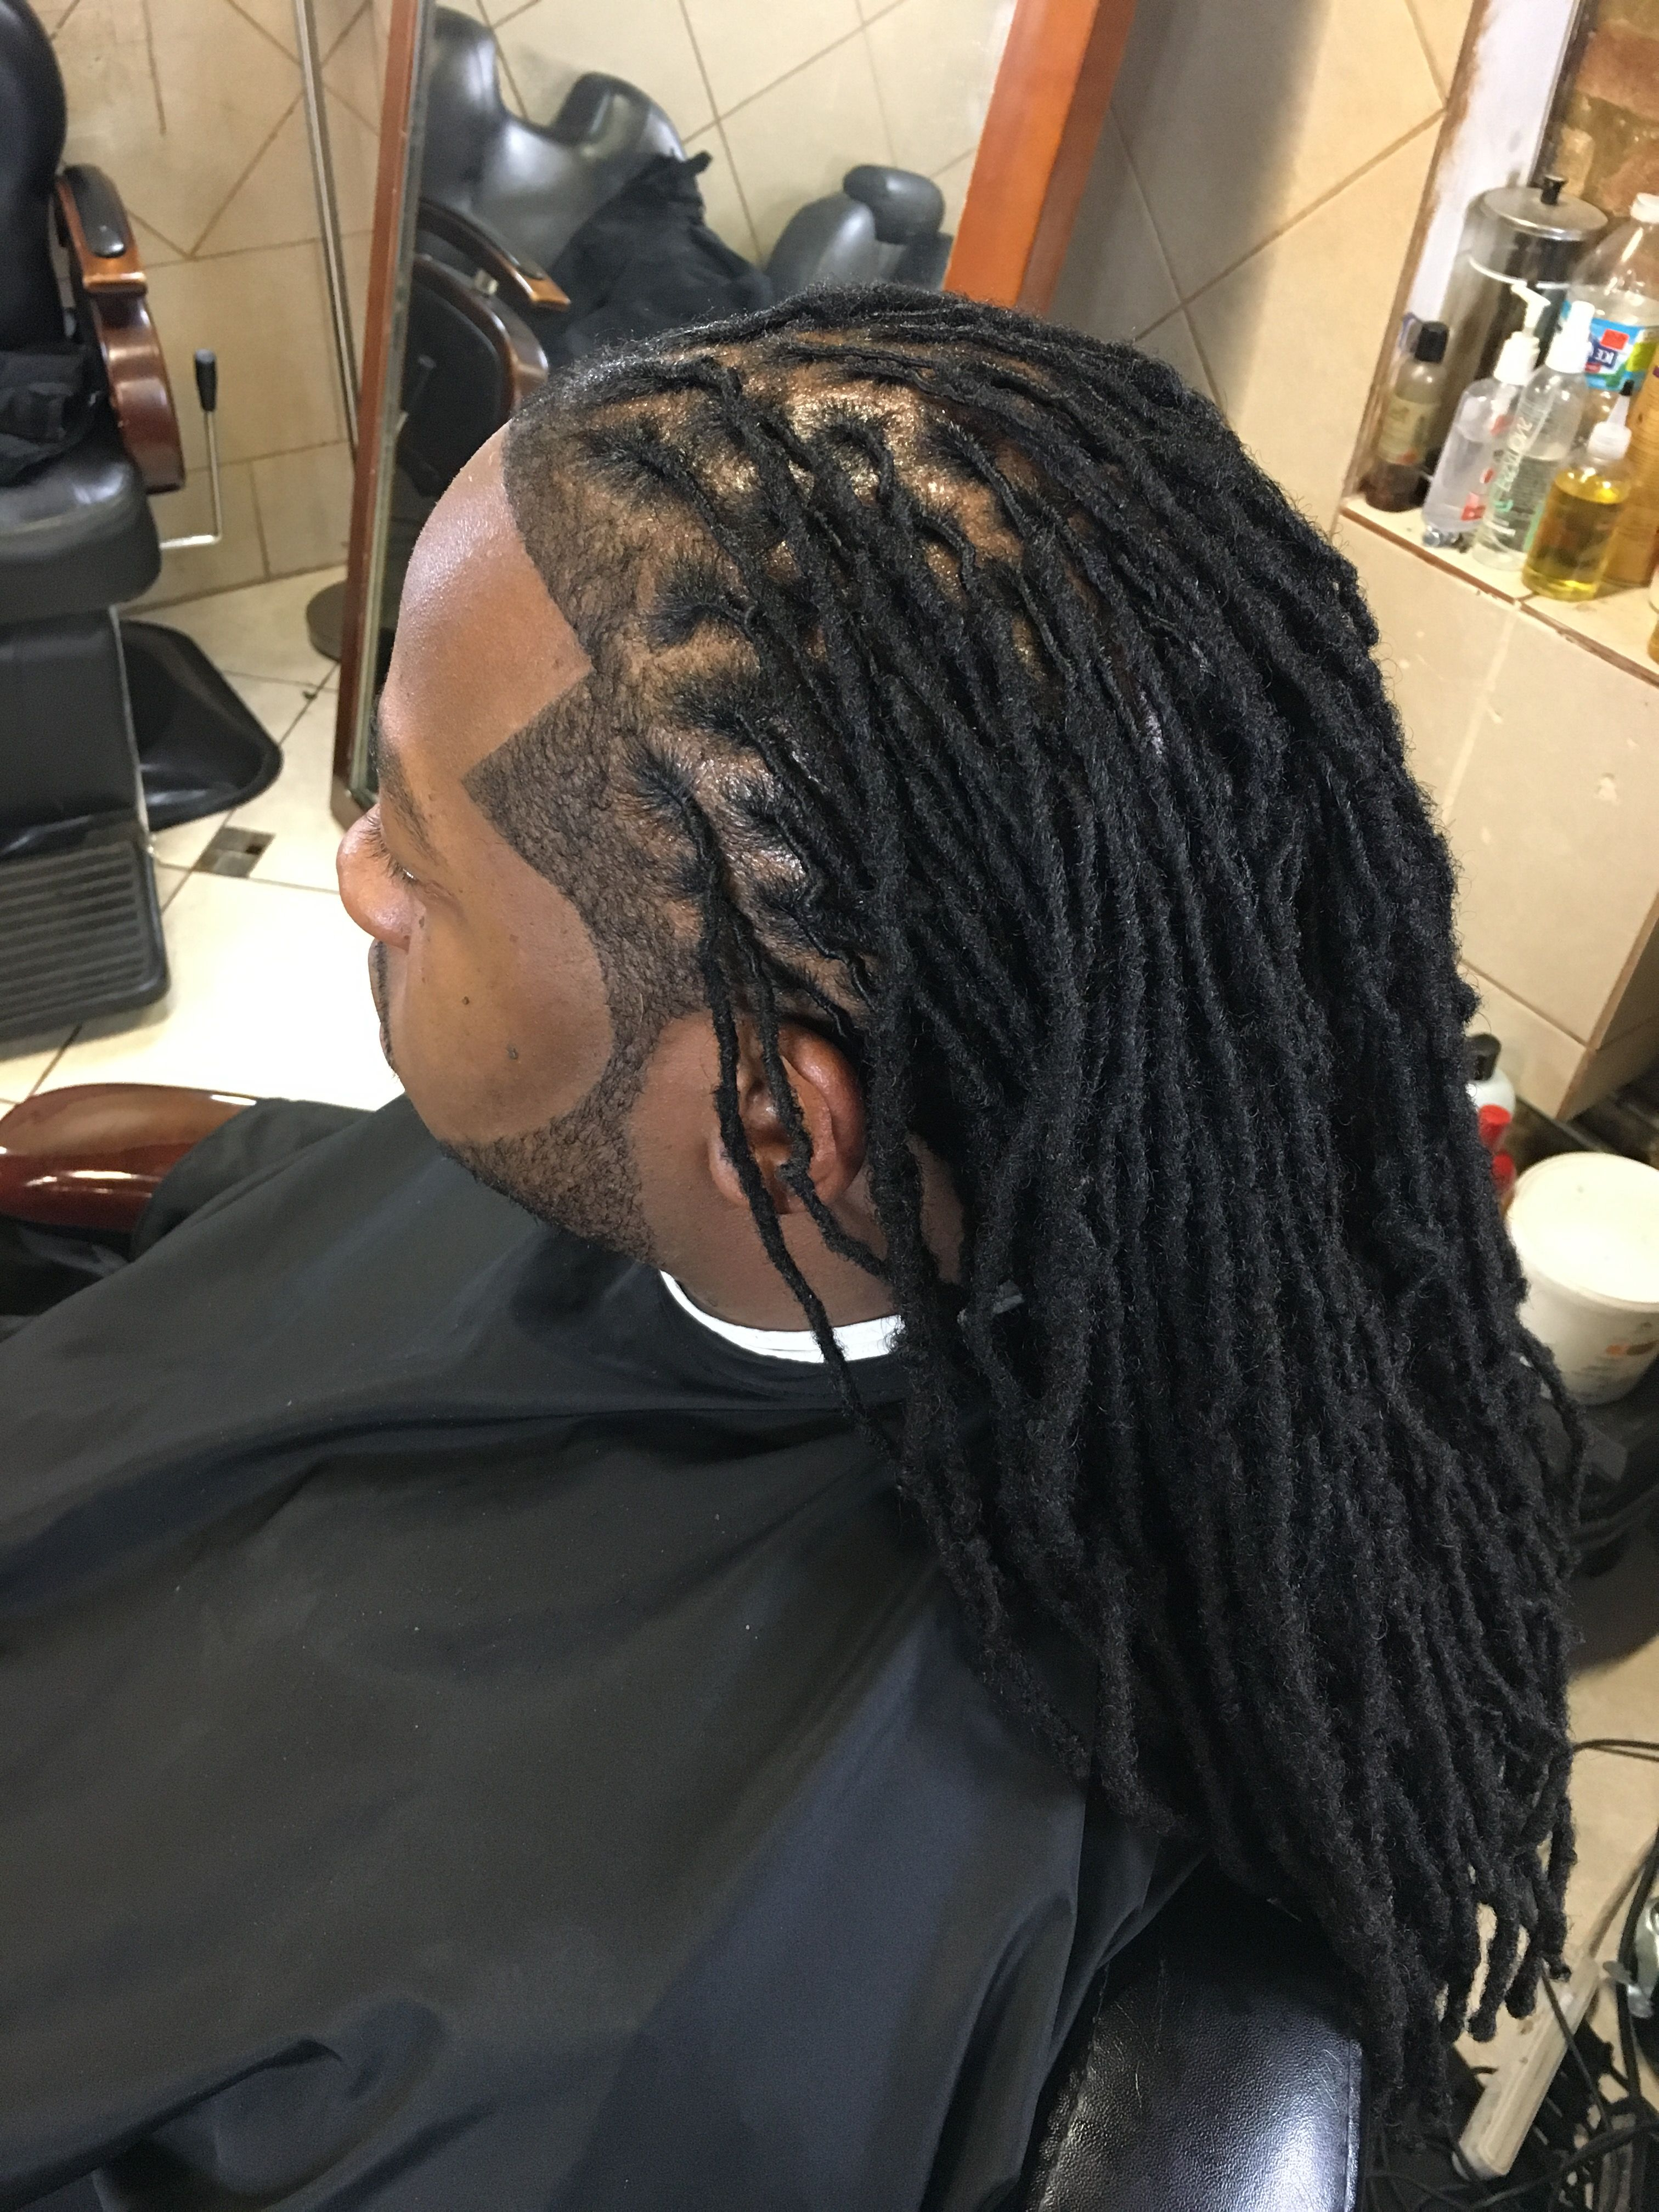 Widely Used Tightly Coiled Gray Dreads Bun Hairstyles In Fresh Maintenance With Crispy Lining #dreadlocs #dreadlocks (View 11 of 20)